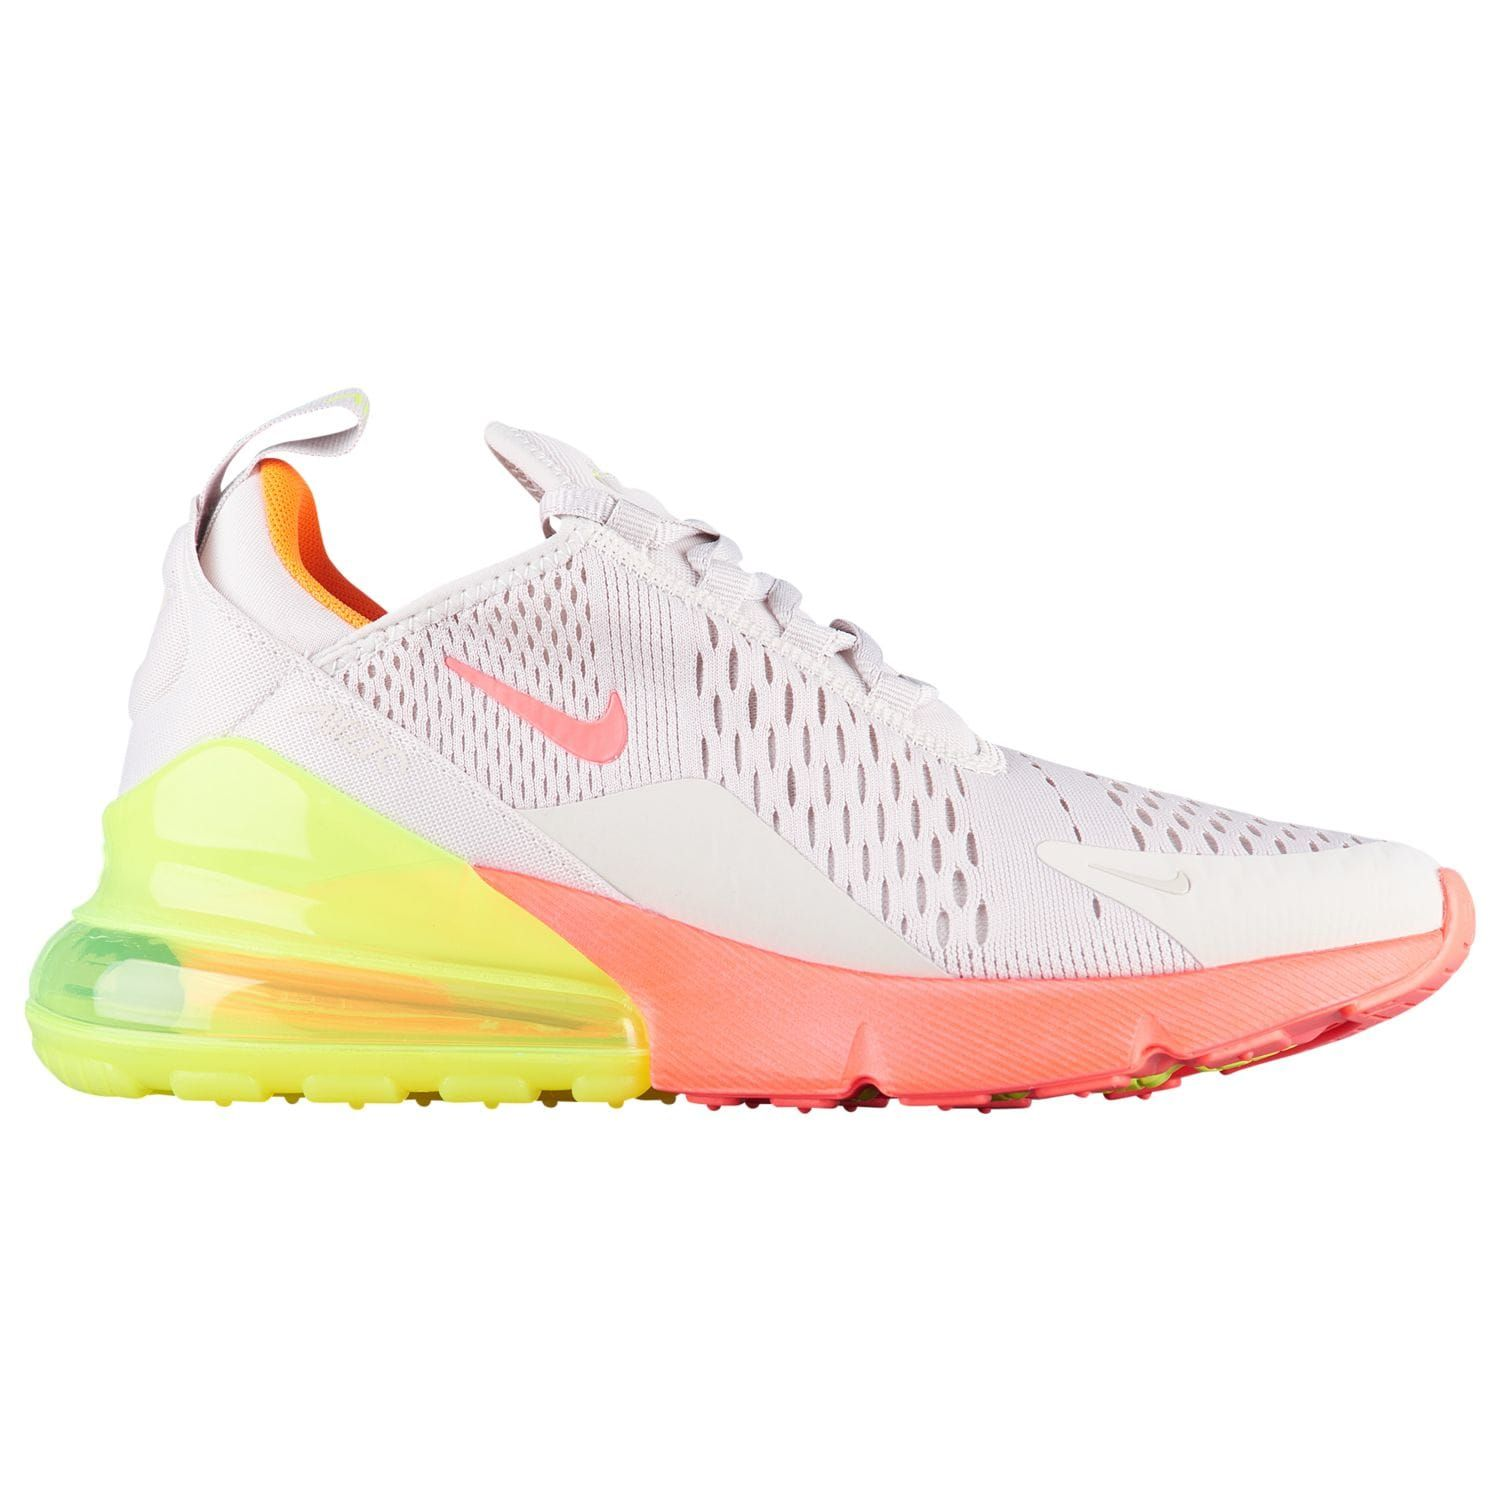 deb84d6b44aa4 Nike Air Max 270 - Women's - Running - Shoes - Desert Sand/Hot  Punch/Volt/Total Orange